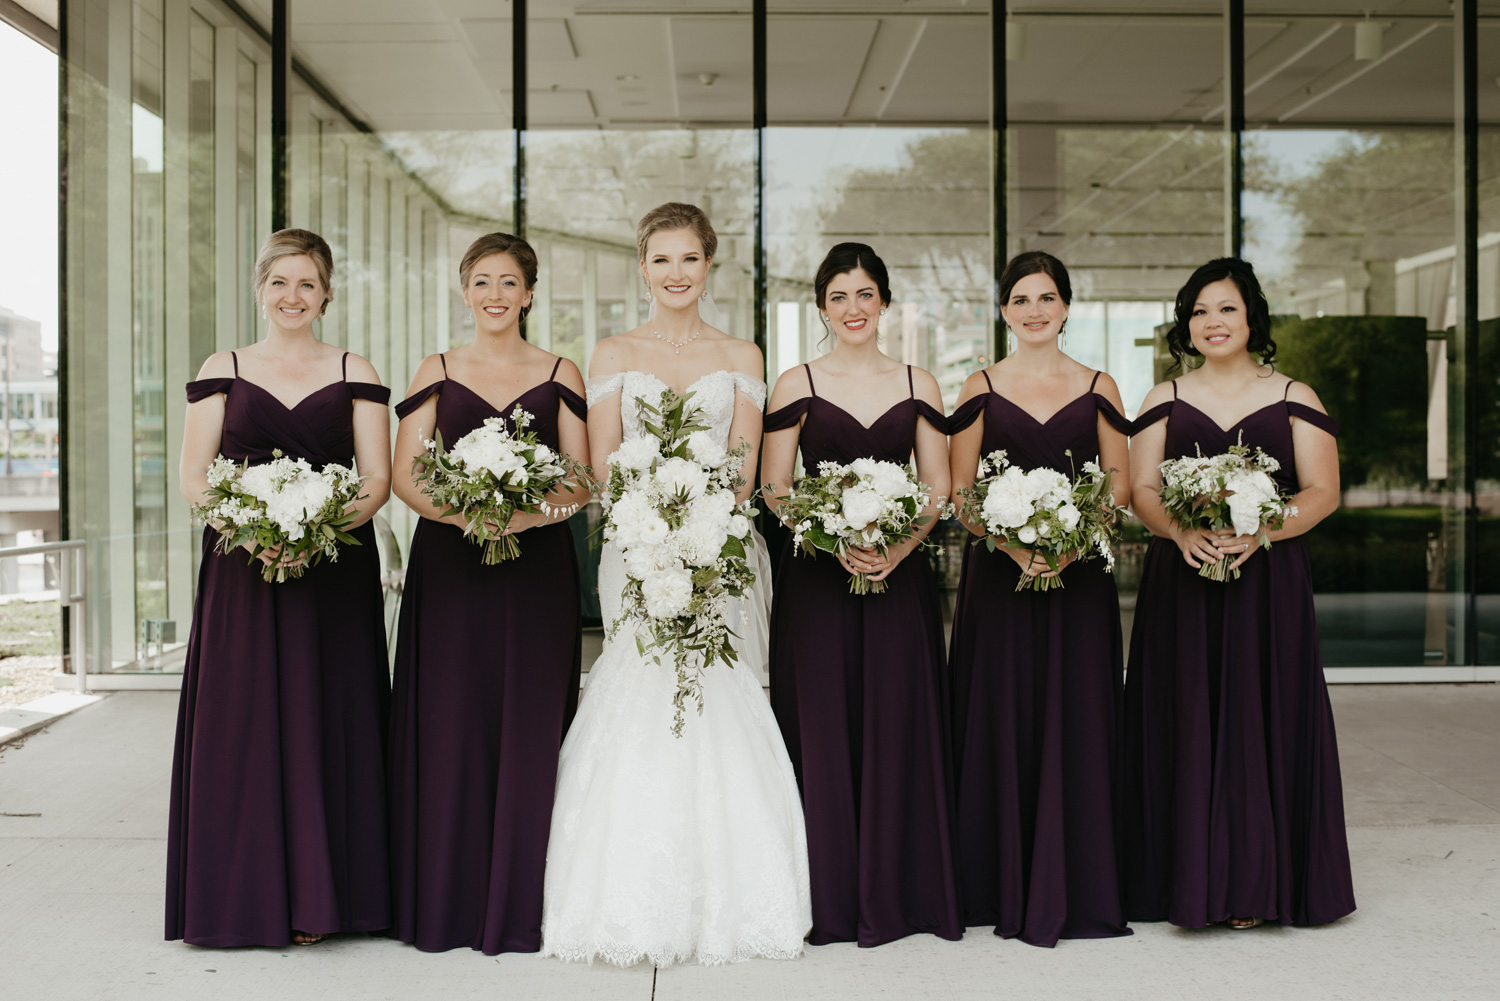 Bride and bridesmaids standing with floral in purple dresses